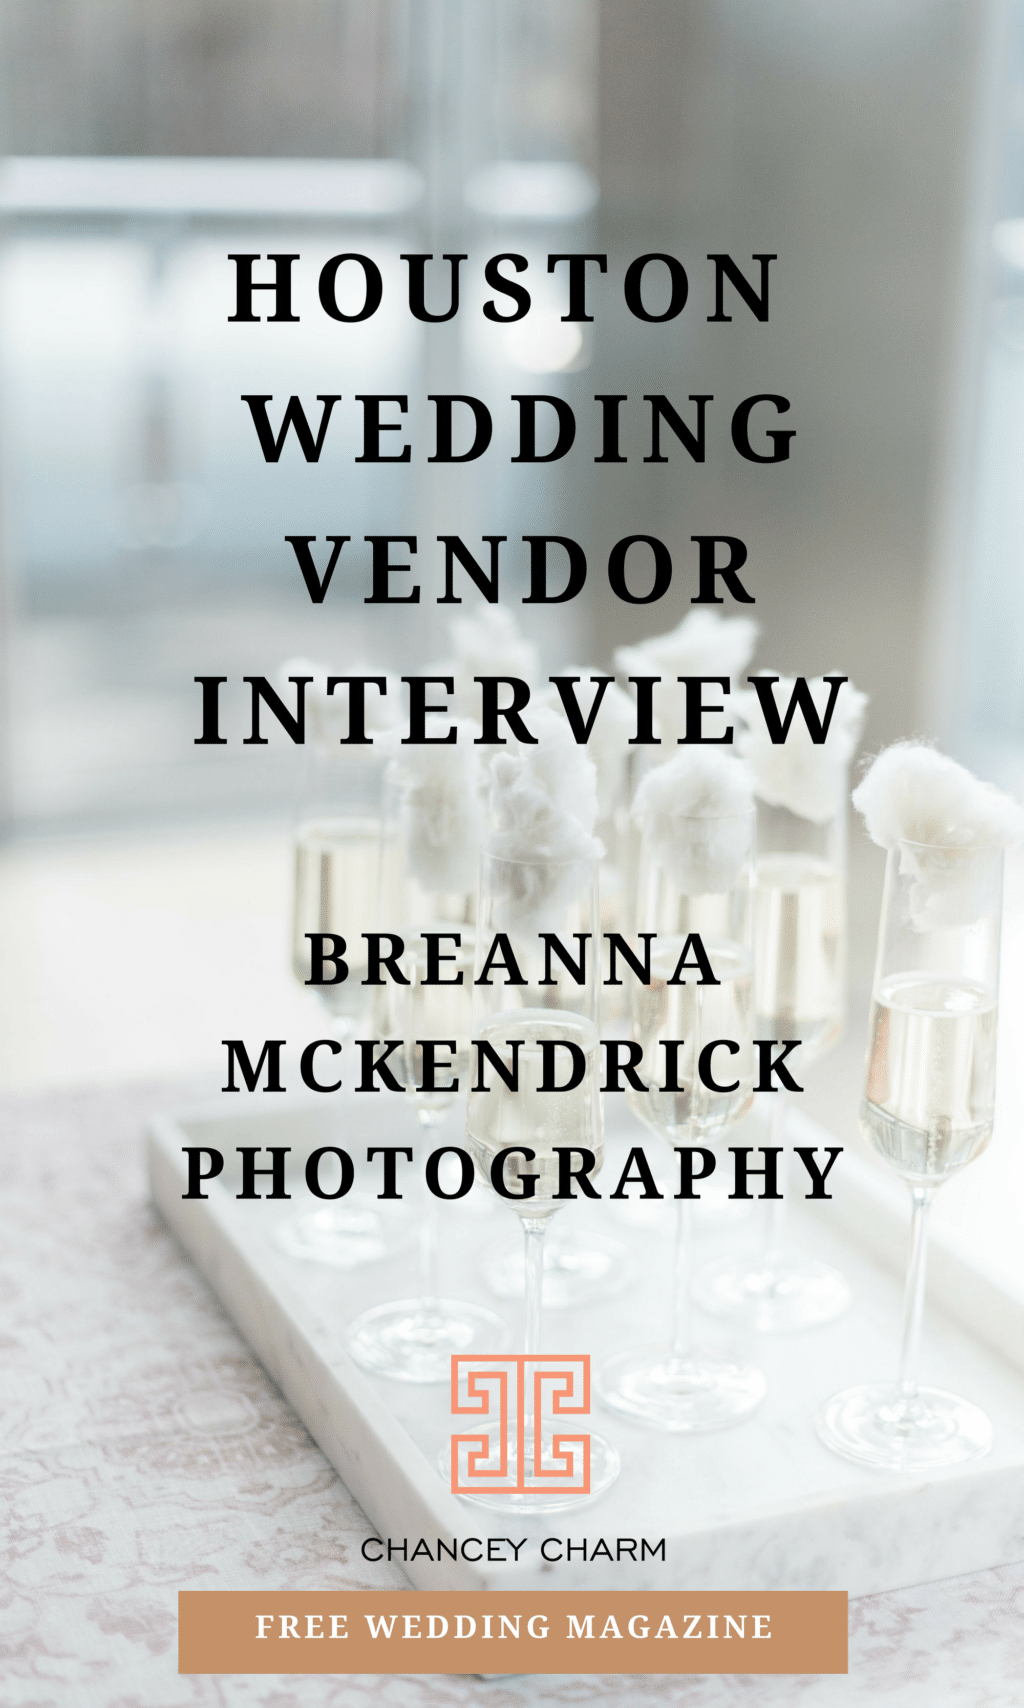 Are you looking for the perfect set of Houston wedding vendors? Chancey Charm is interviewing Breanna McKendrick Photography + sharing access to our FREE Wedding Planning Magazine! #chanceycharm #weddingplanninganddesign #Houstonwedding #Houstonweddingplanner #Houstonweddingphotographer #Houstonweddingdesign